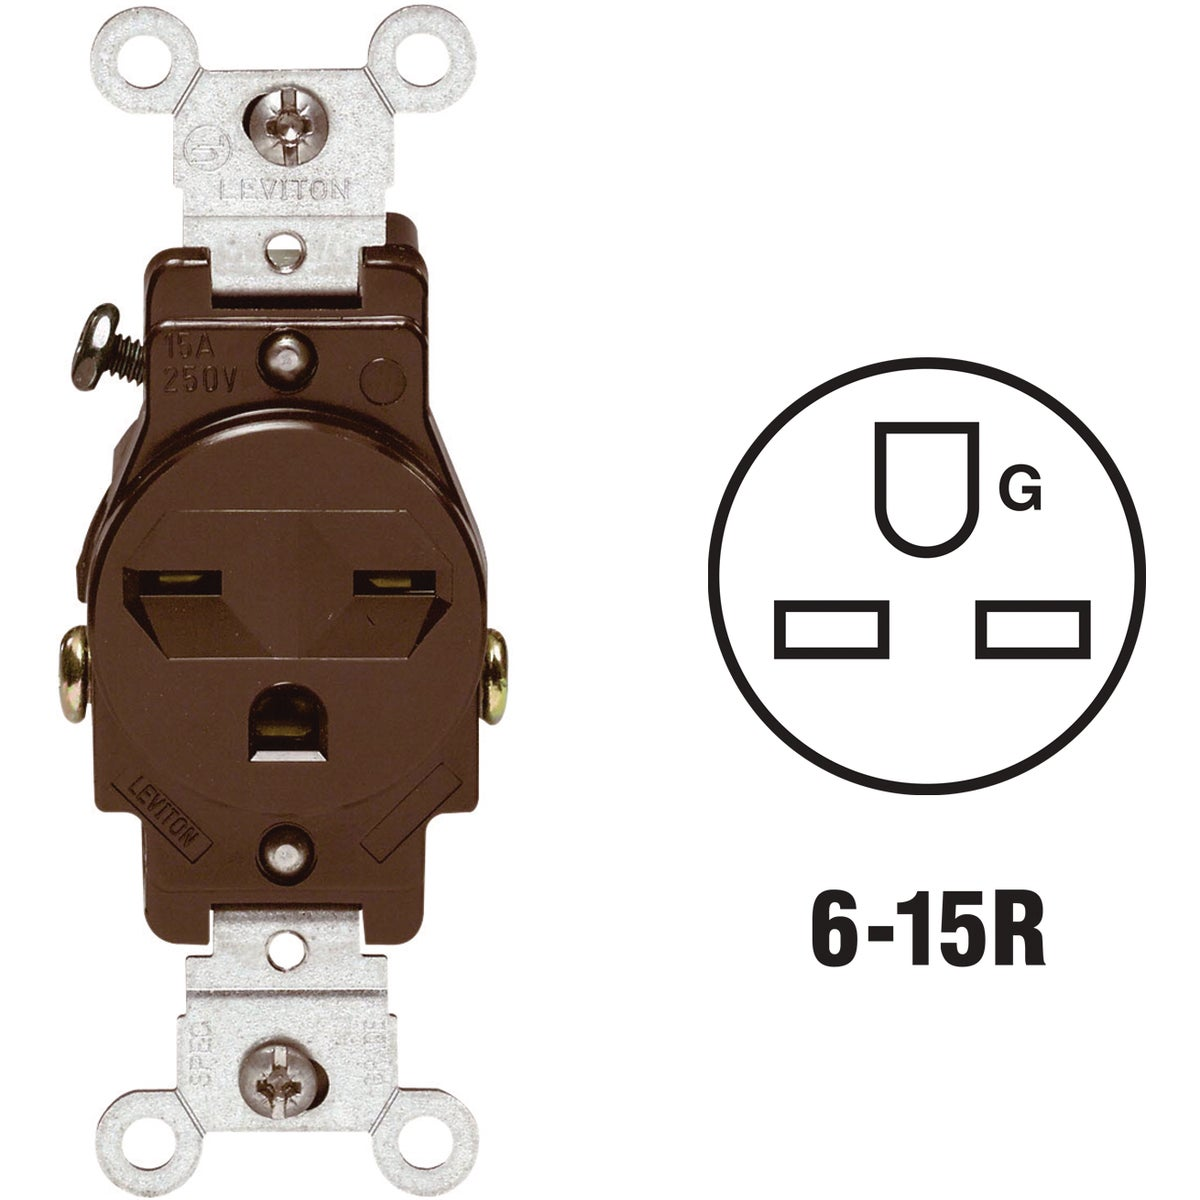 BRN SINGLE OUTLET - 5029 by Leviton Mfg Co